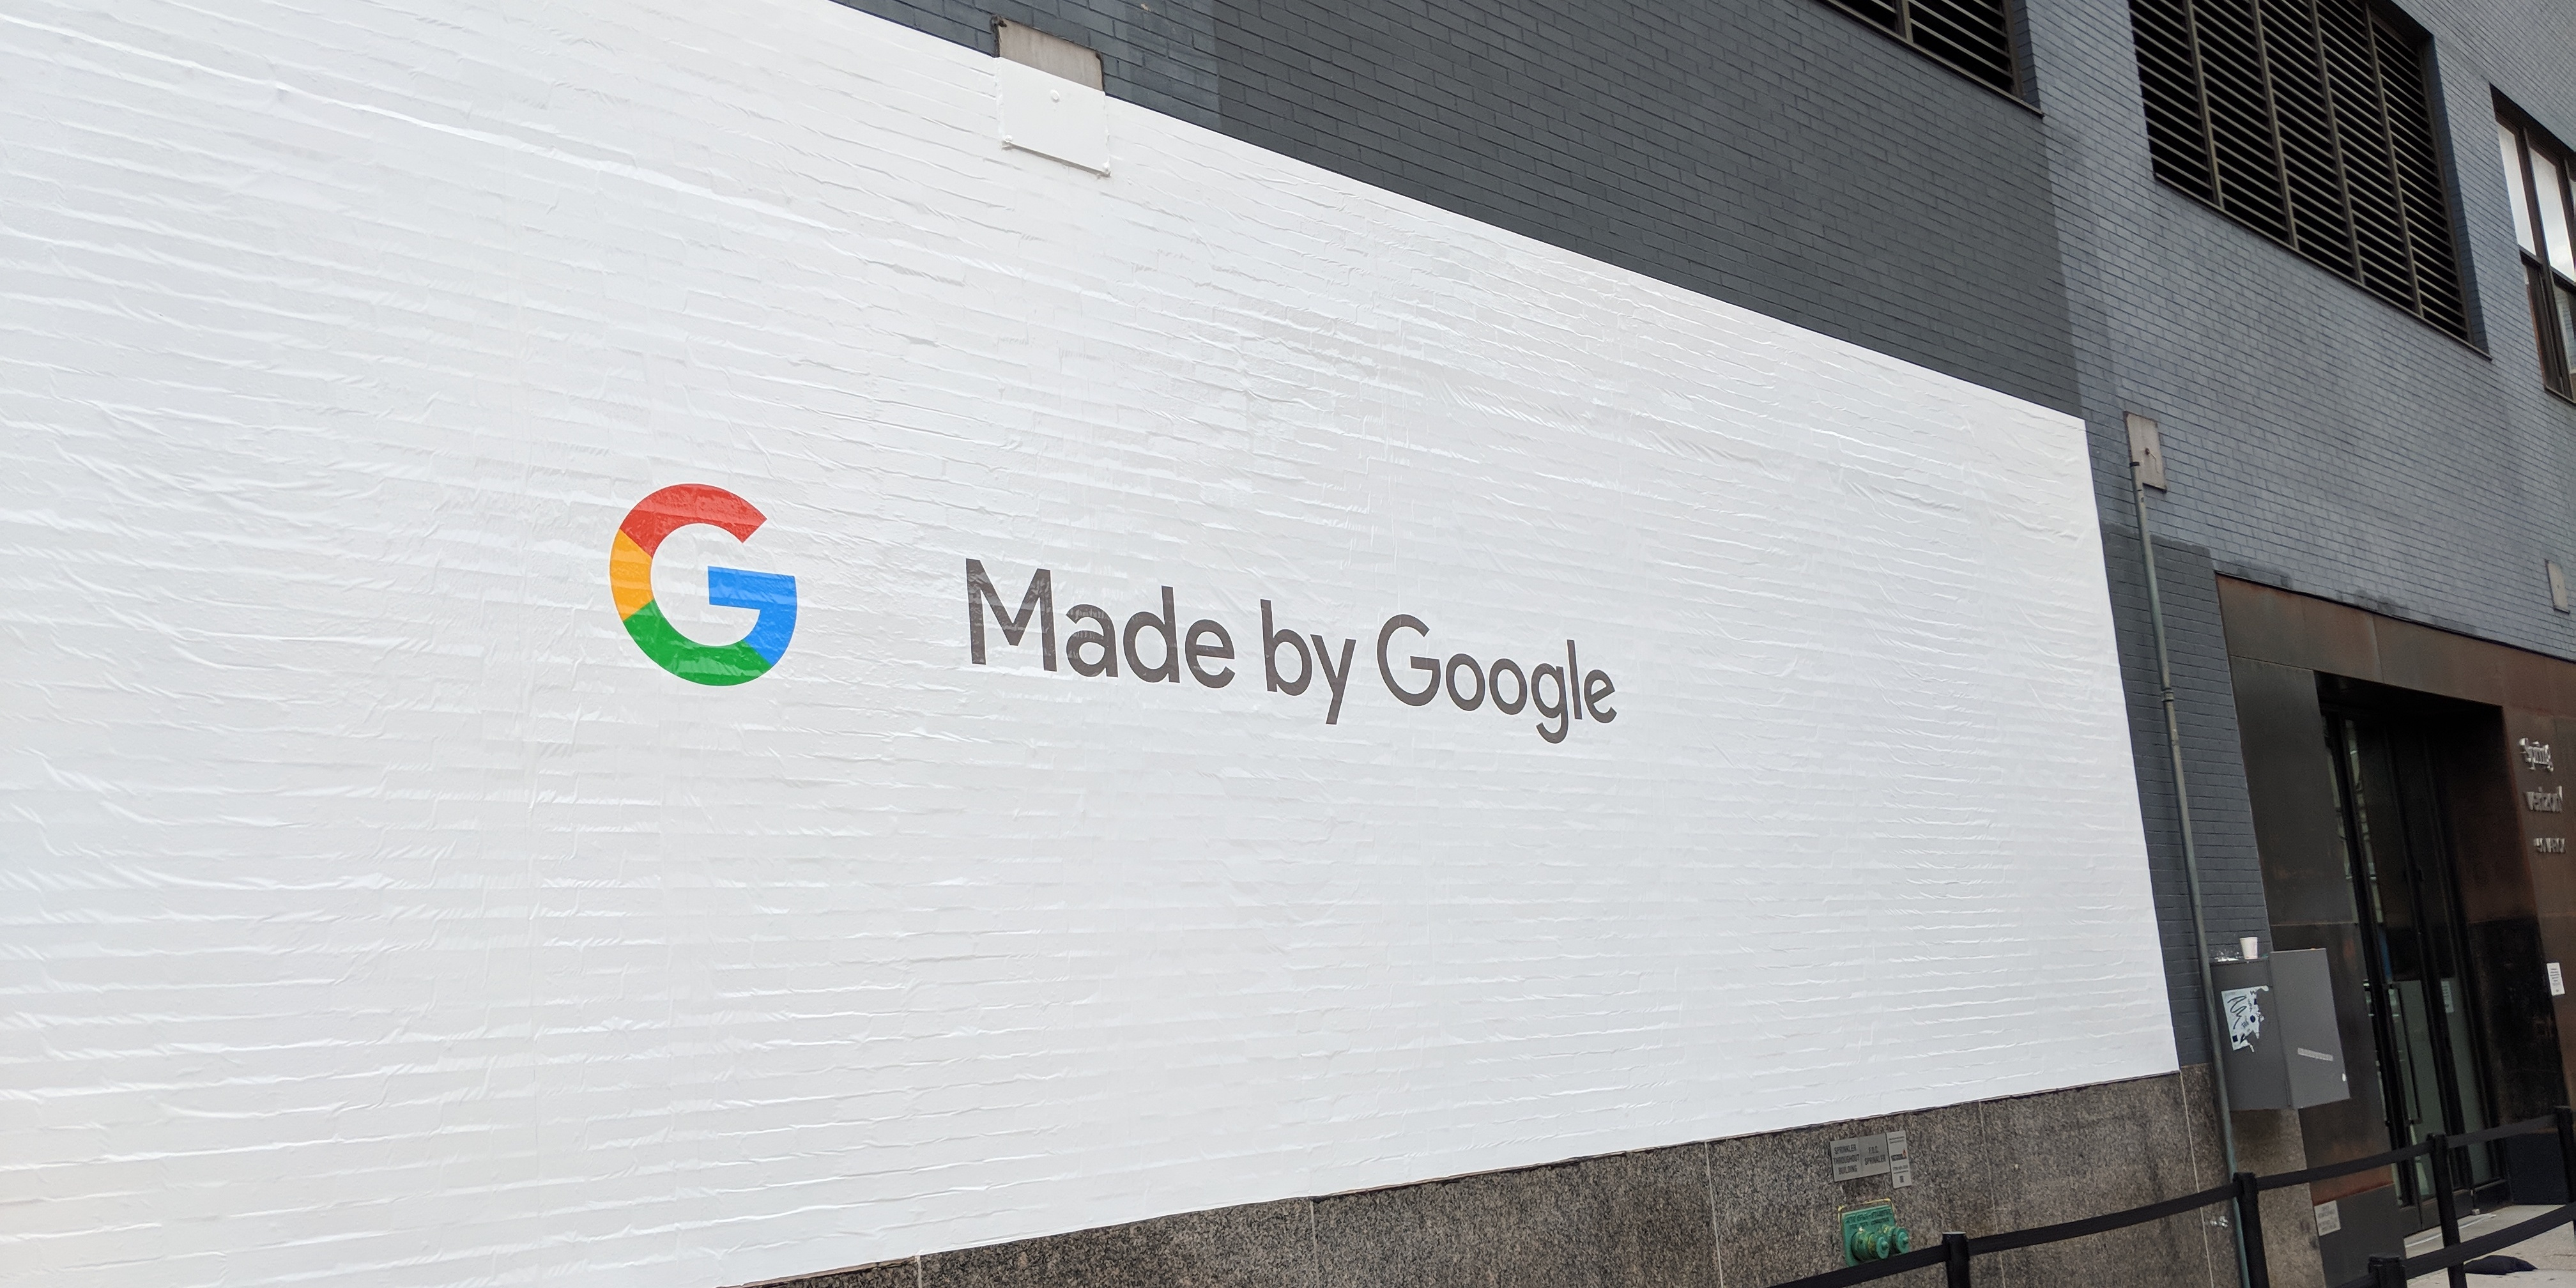 update final renders details everything google s debuting at its 2018 made by google event pixel 3 home hub and more